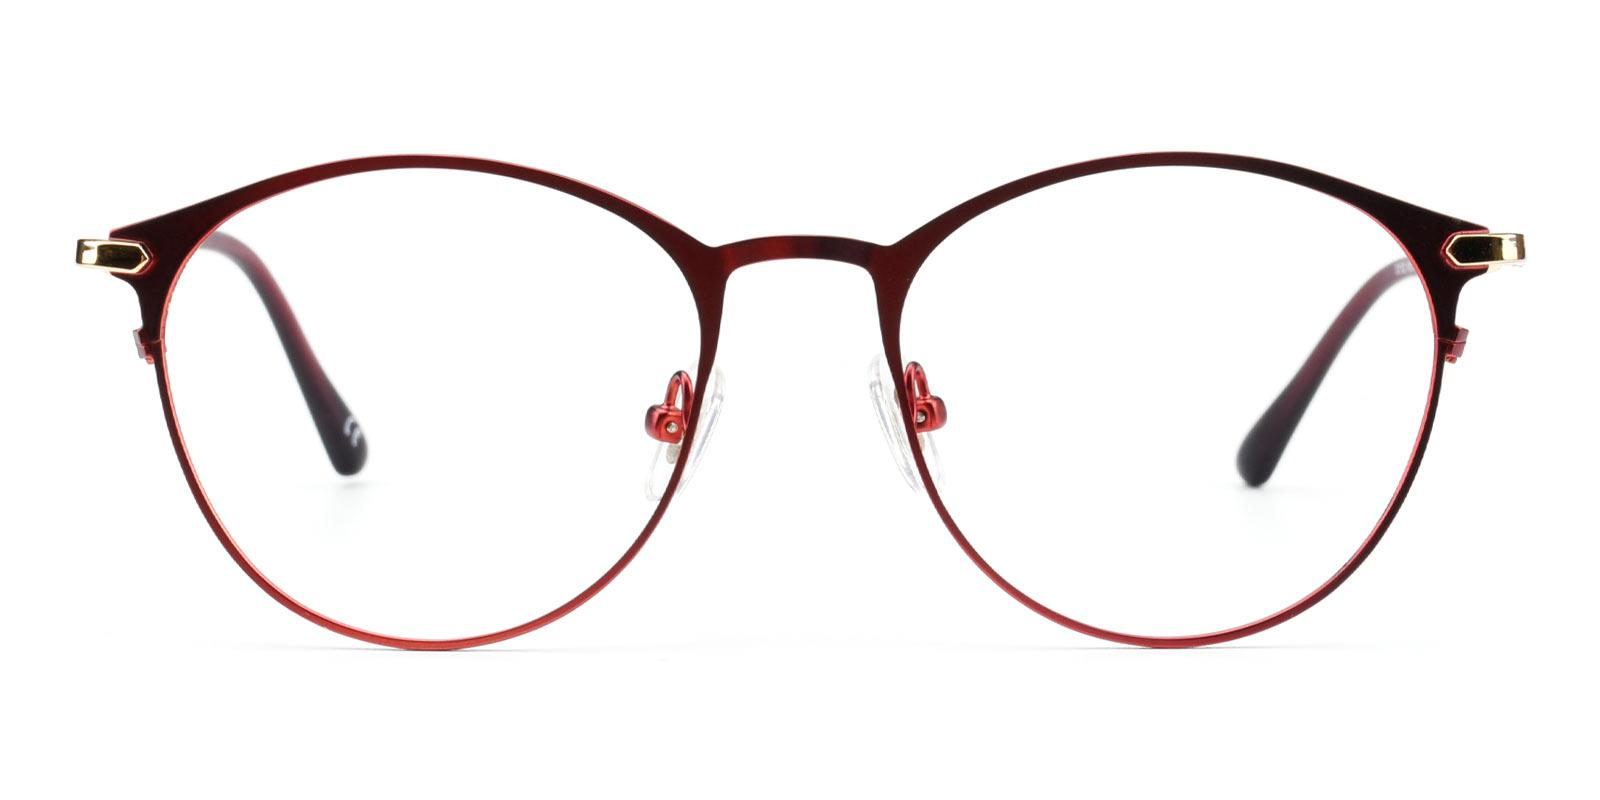 Gosse-Red-Oval-Metal-Eyeglasses-additional2